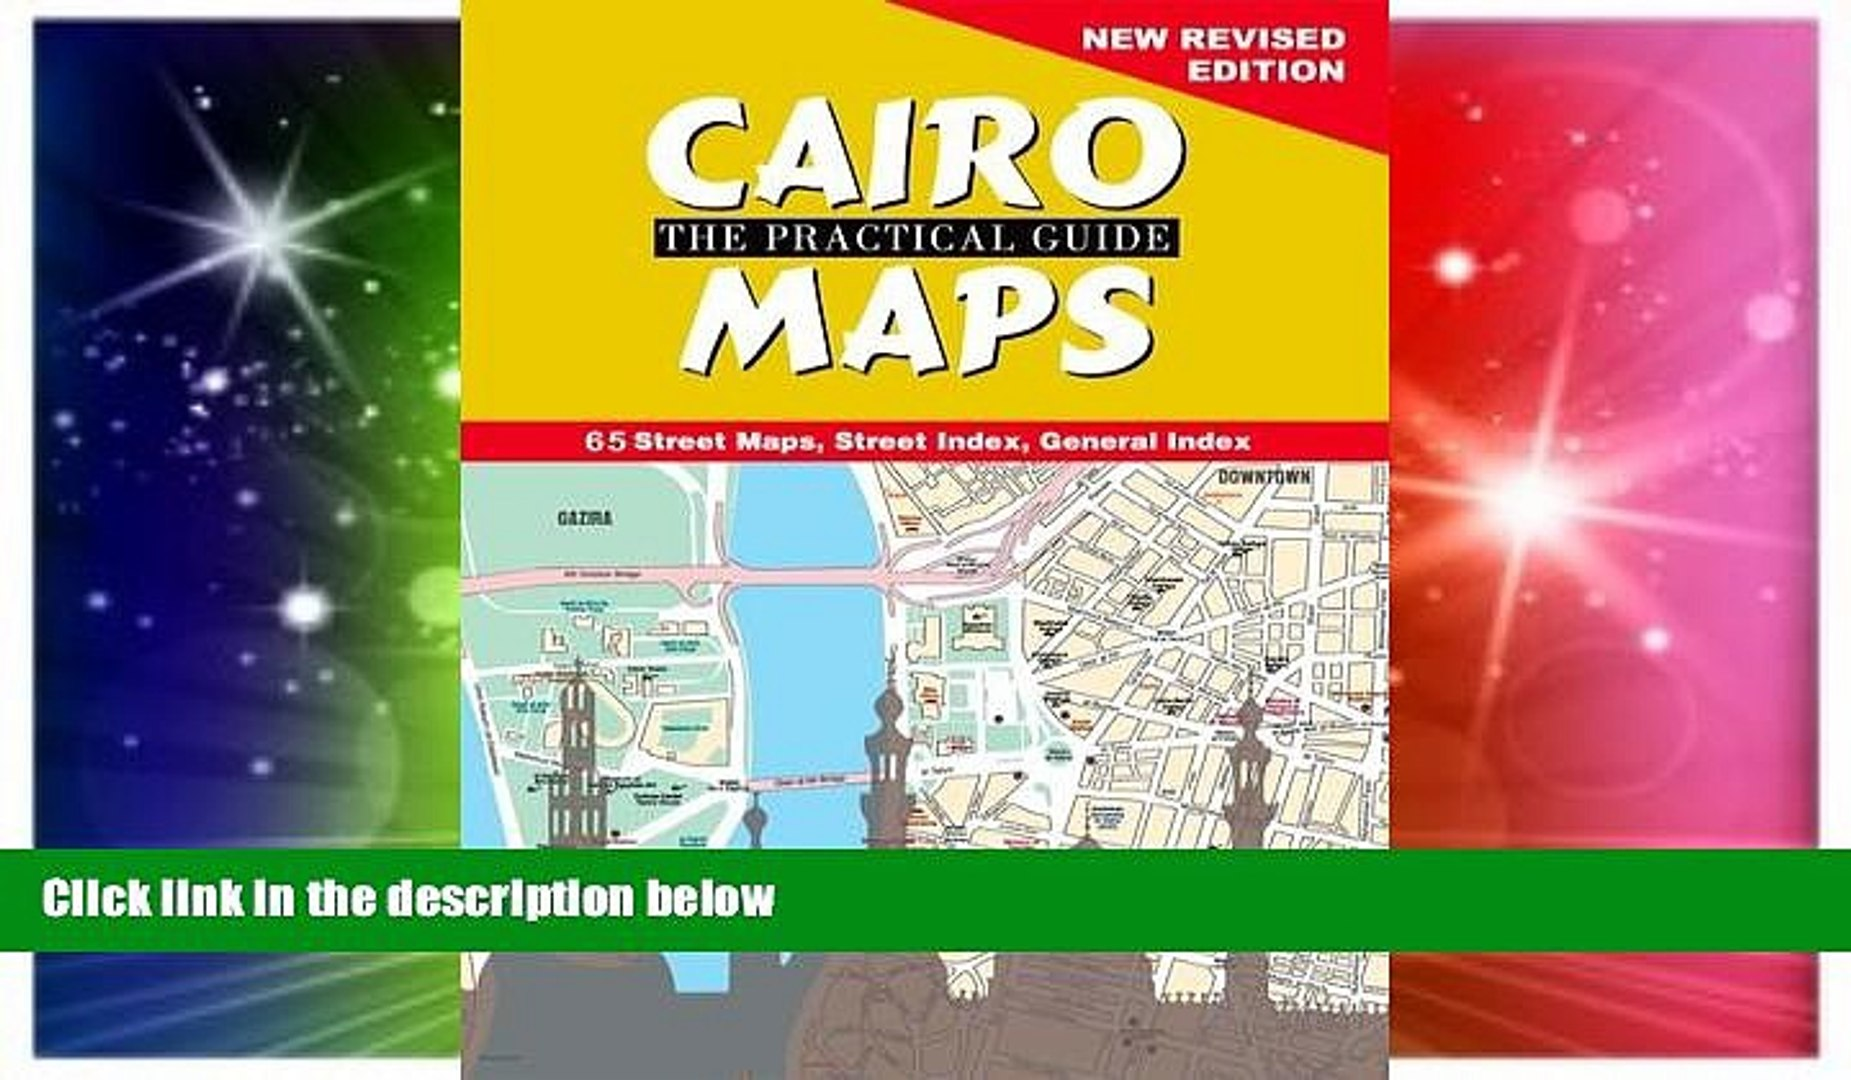 Cairo, the practical guide map: buy online at best price in egypt.